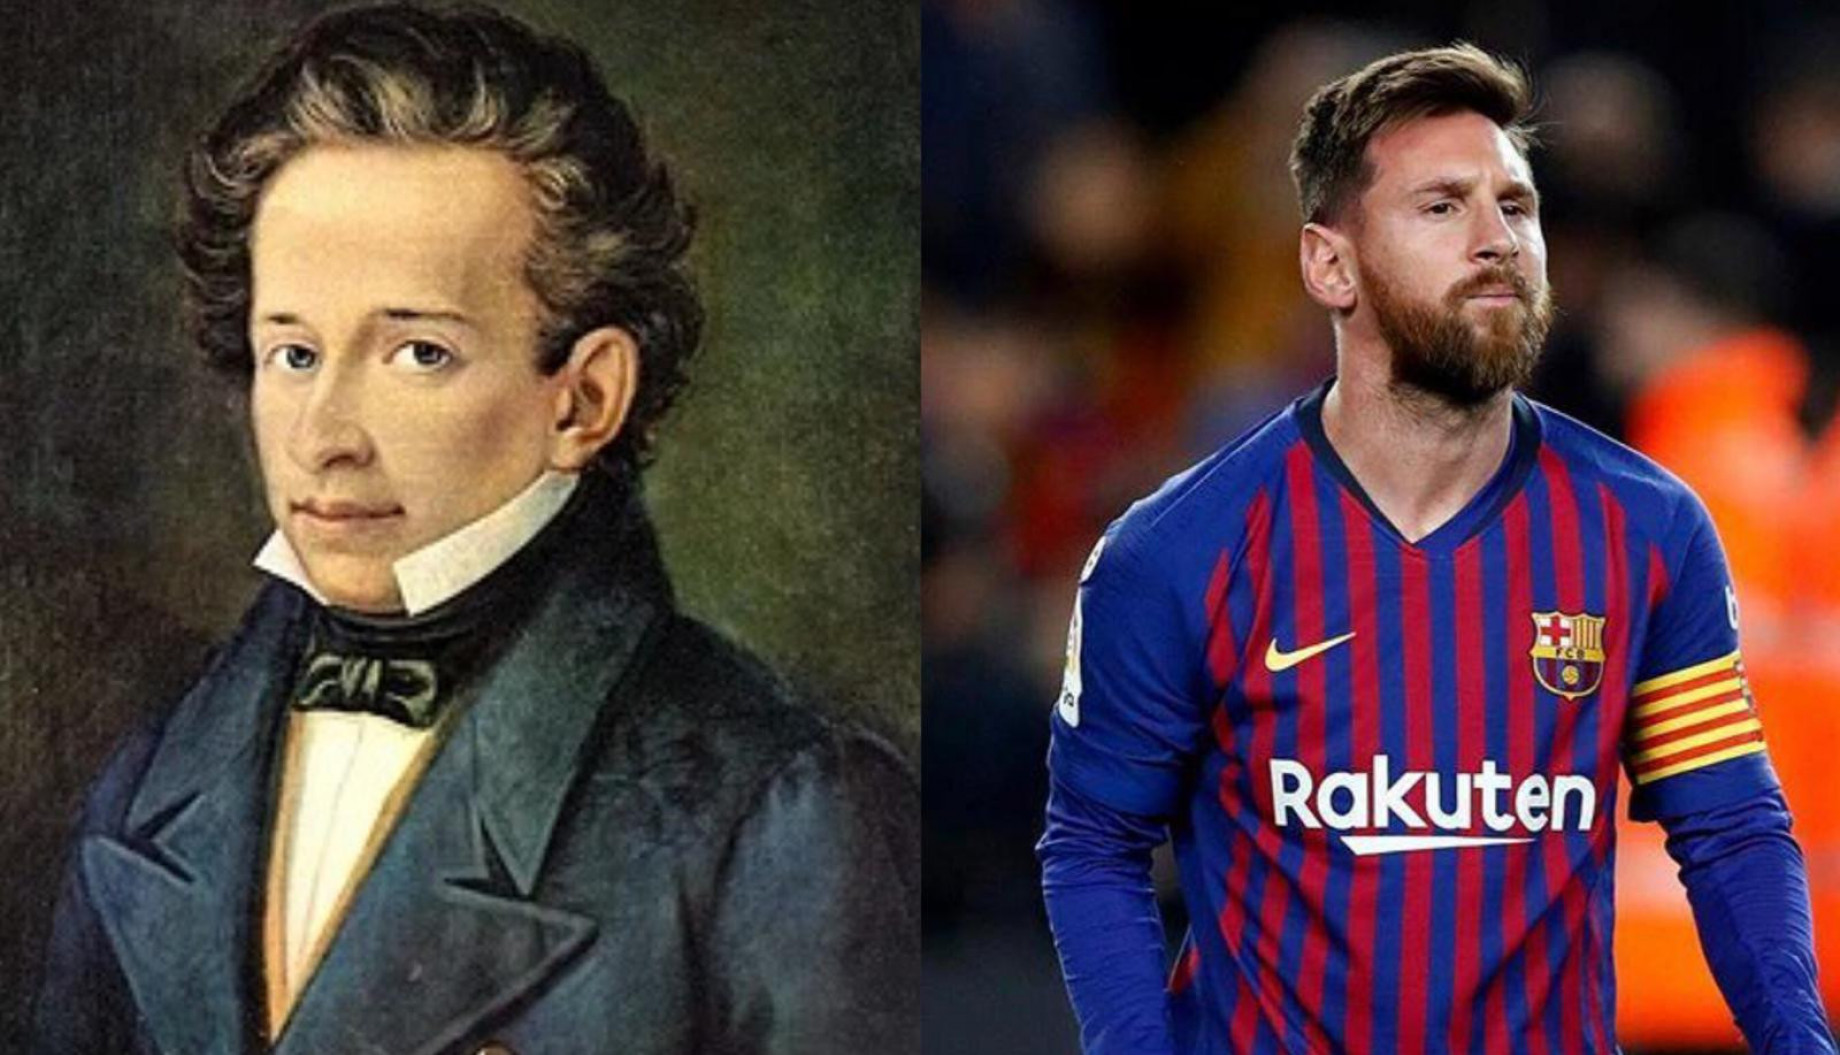 messi recanati 2.jpeg